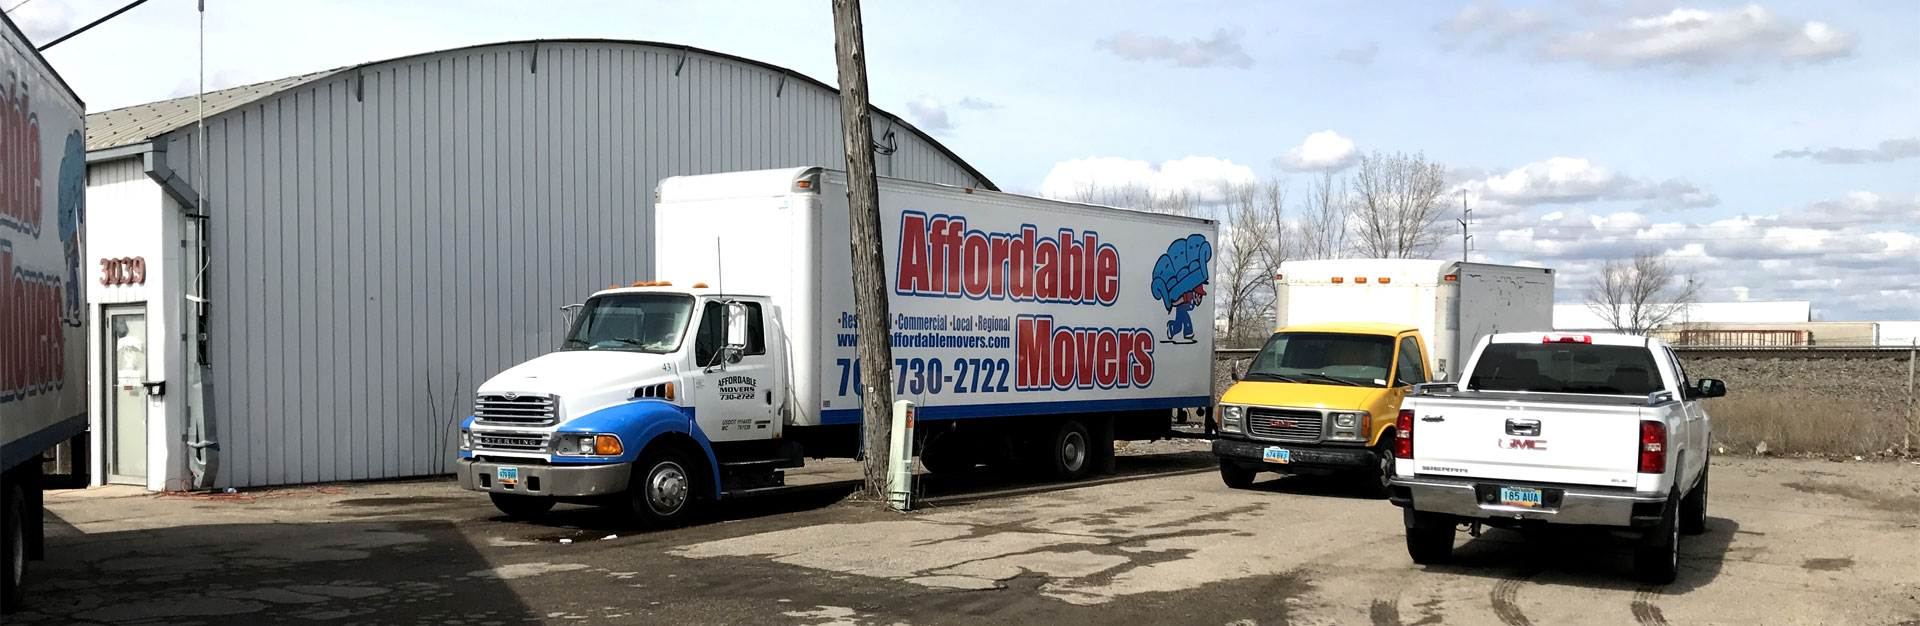 Affordable Movers - Home Banner 2